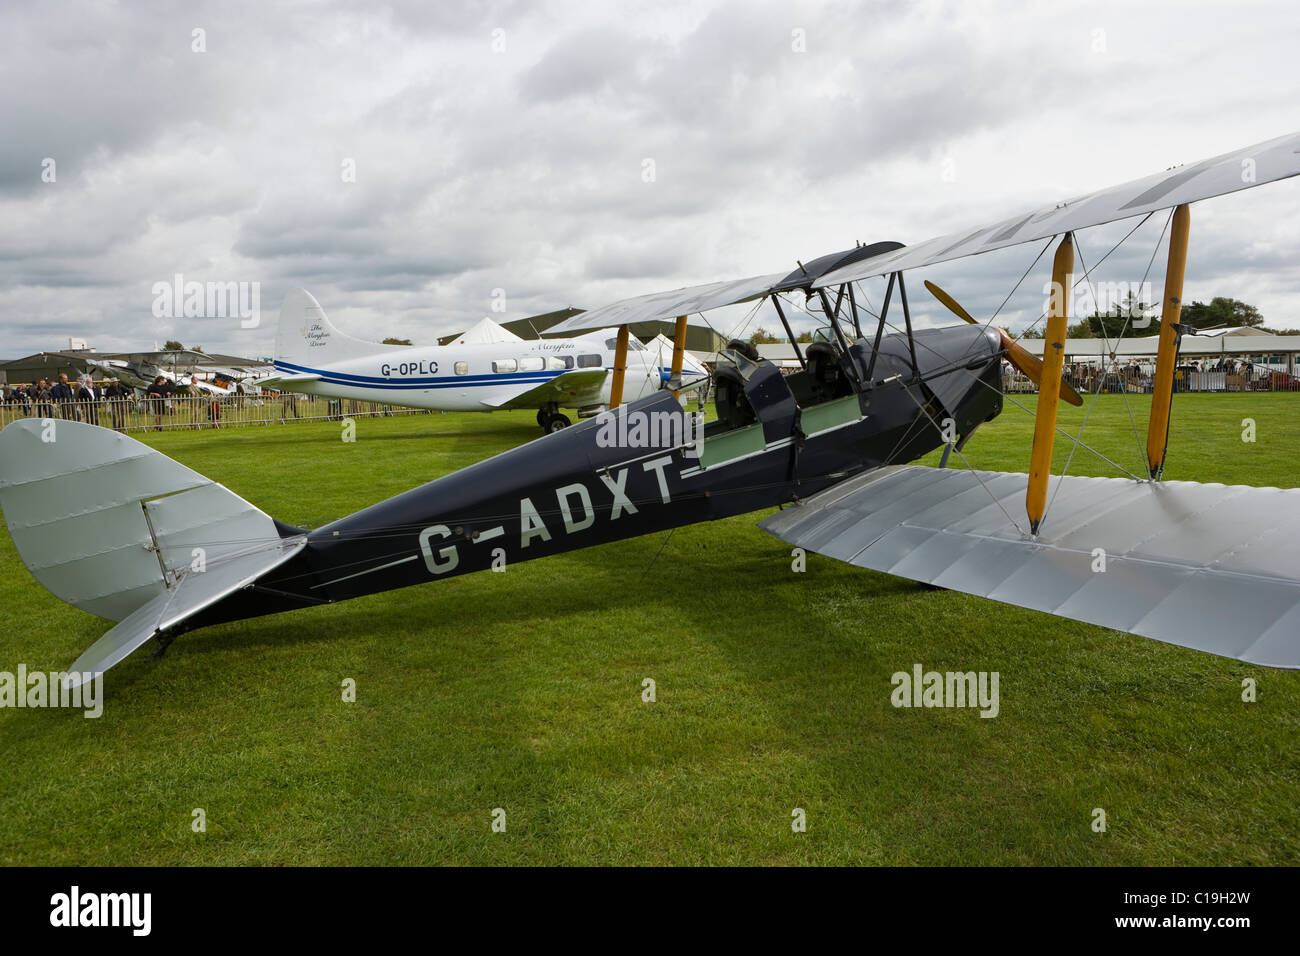 Tiger Moth at Goodwood revival - Stock Image